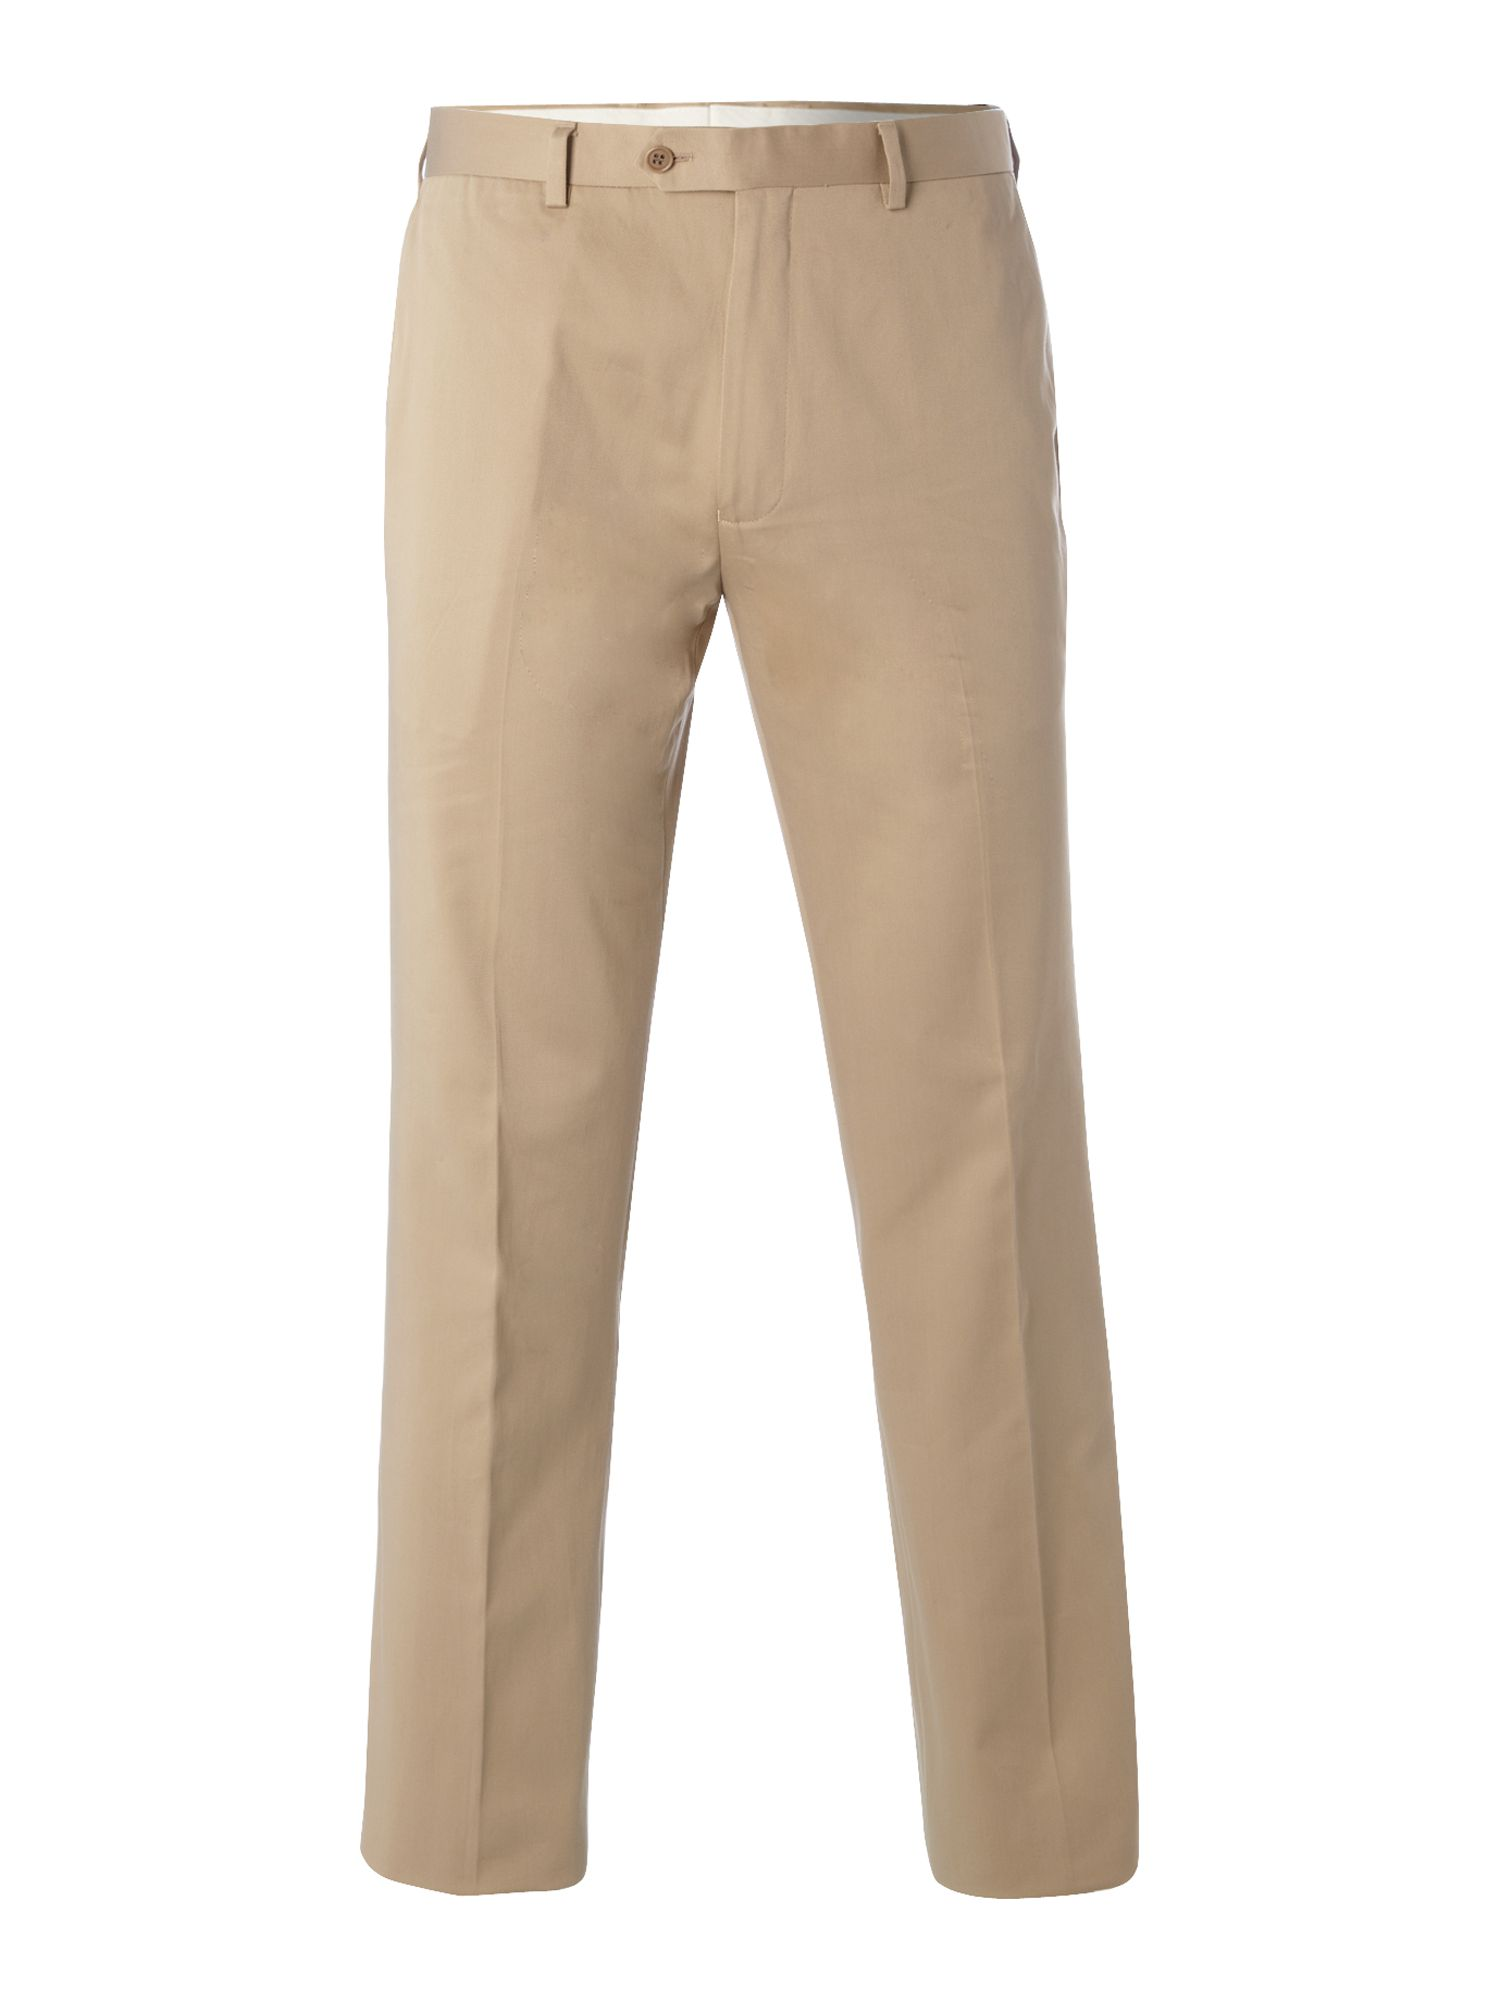 Manhatten twill cotton flat front trouser